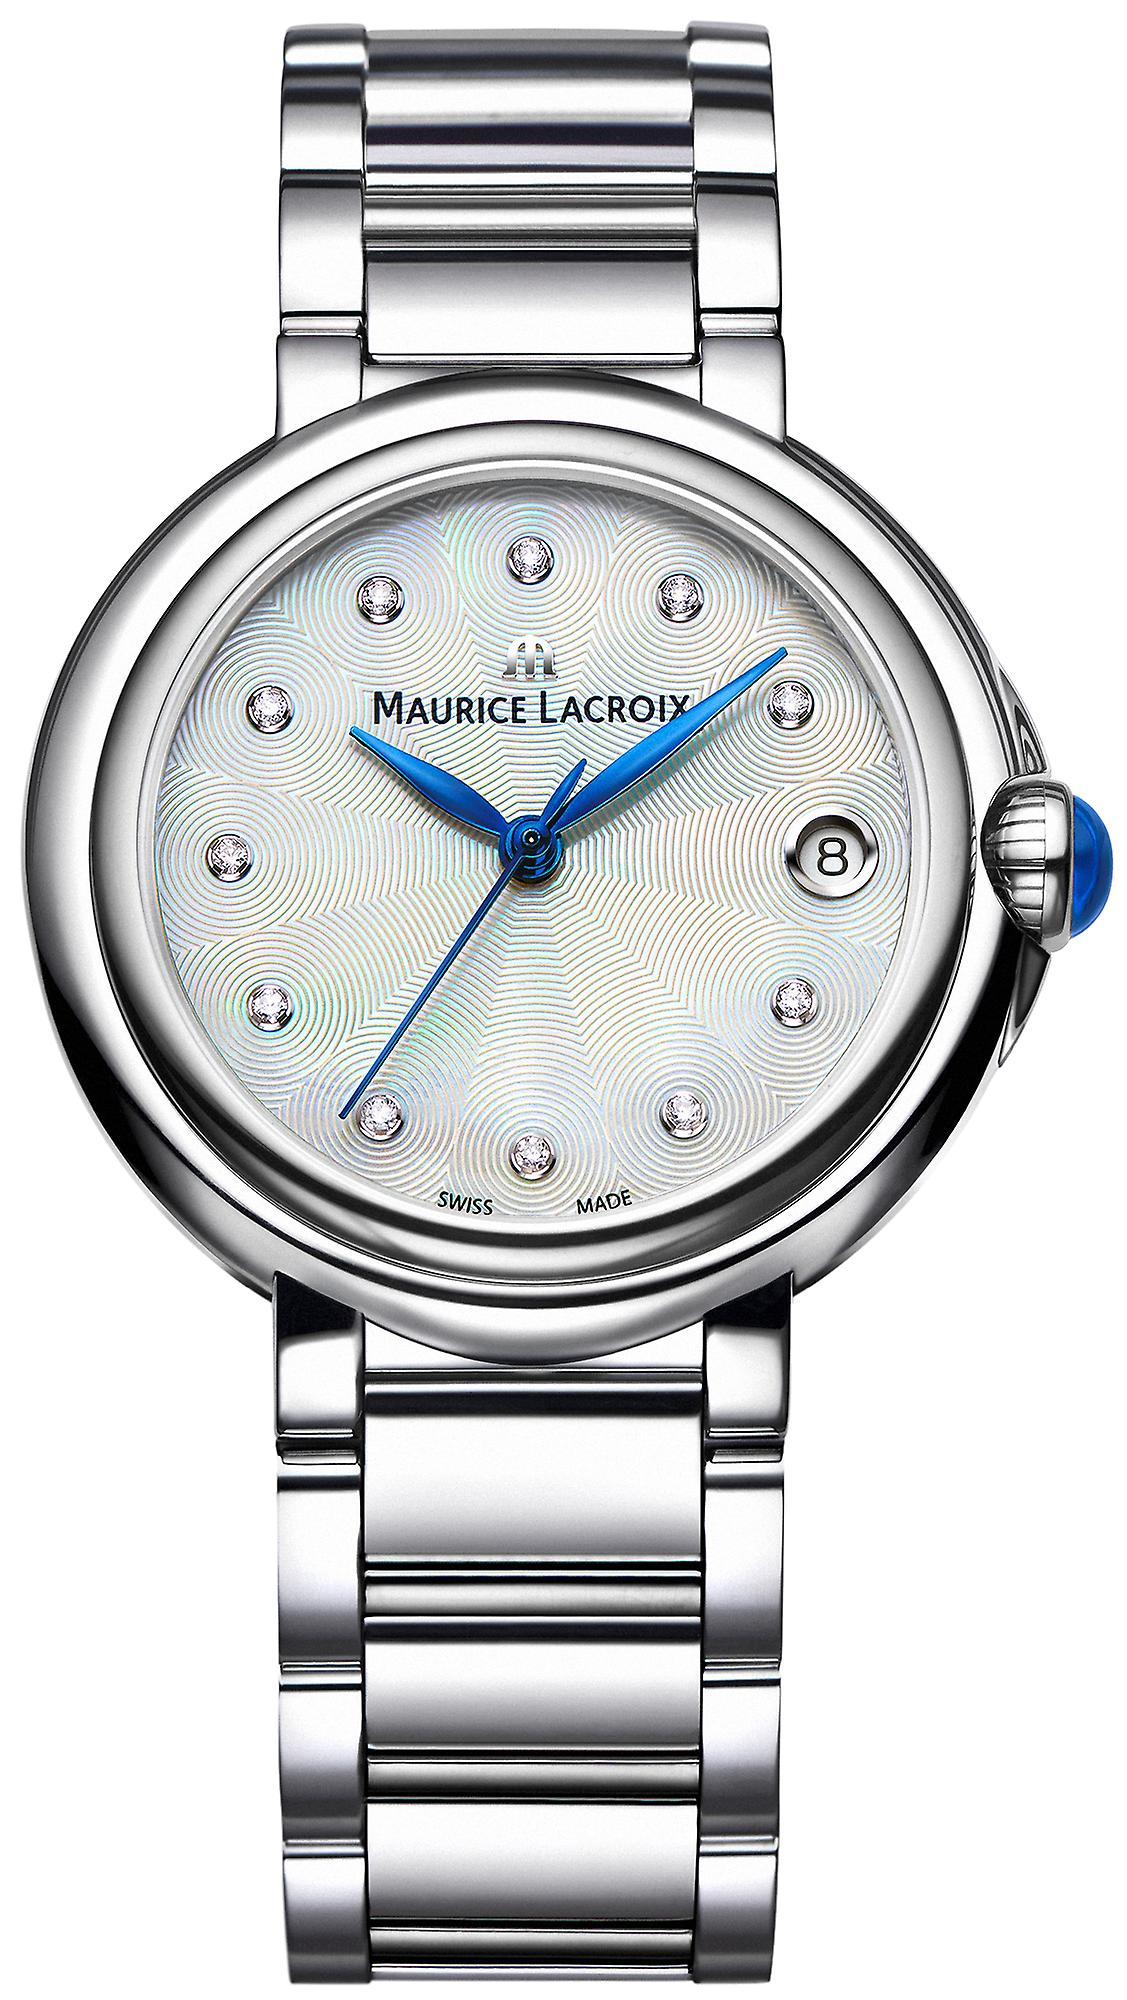 Maurice Lacroix Fiaba Stainless Steel Diamond Index Ladies Watch